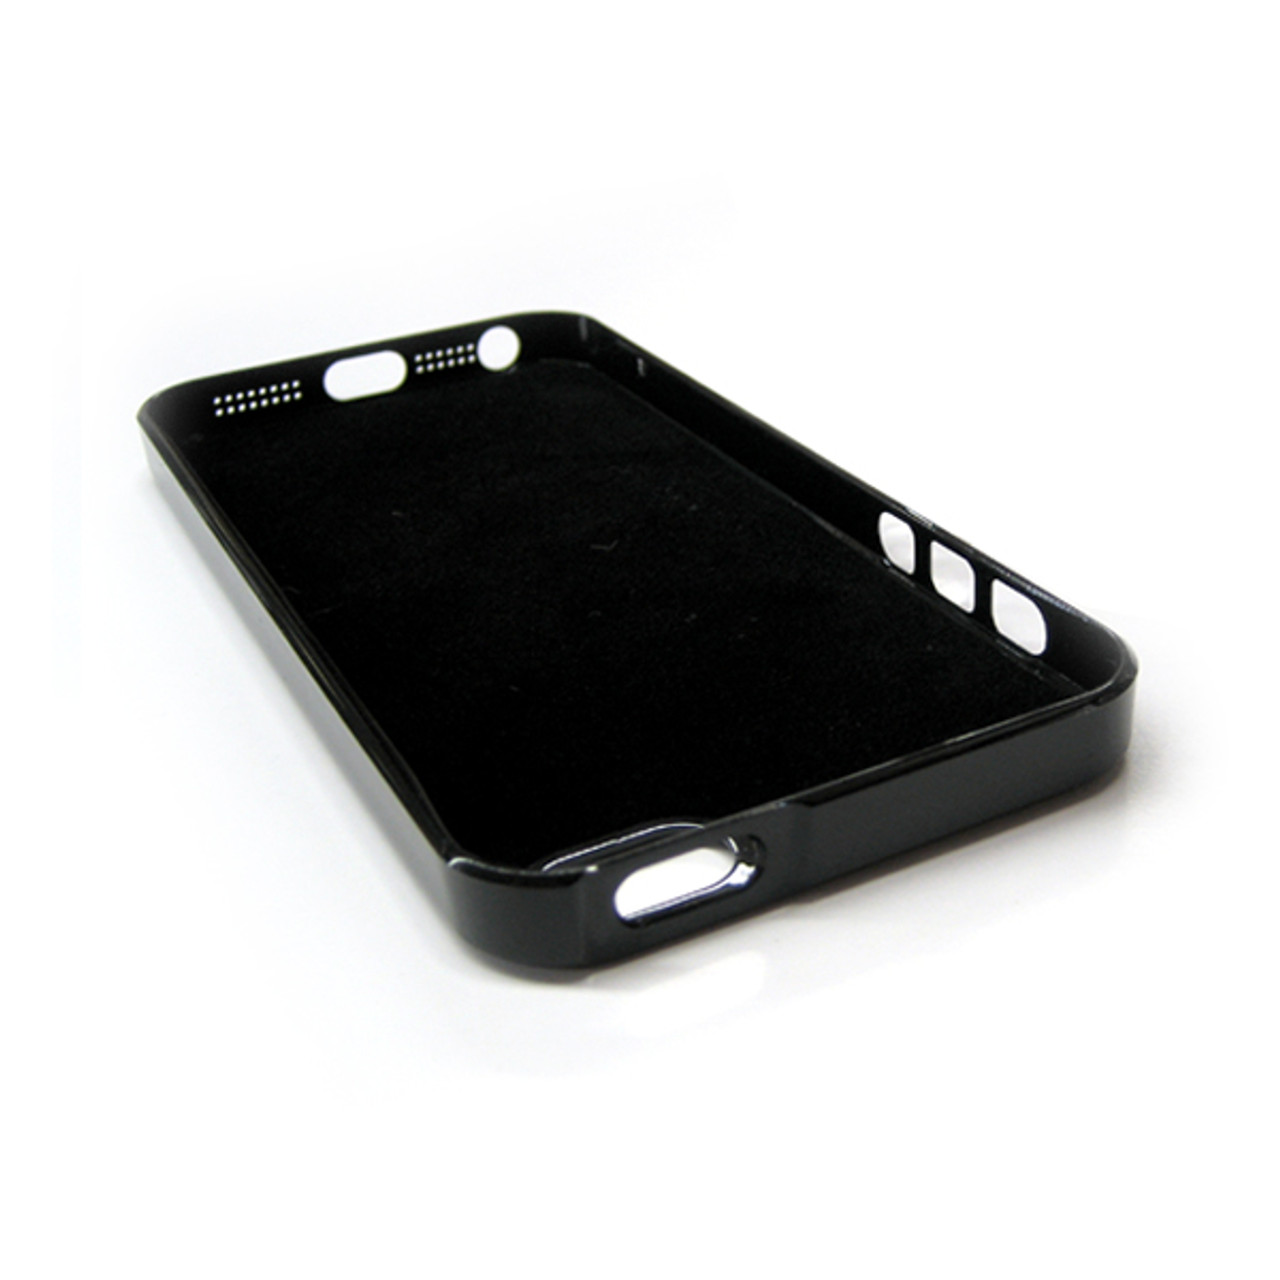 Product image for Aluminium Back Cover for iPhone5 Black | CX Computer Superstore